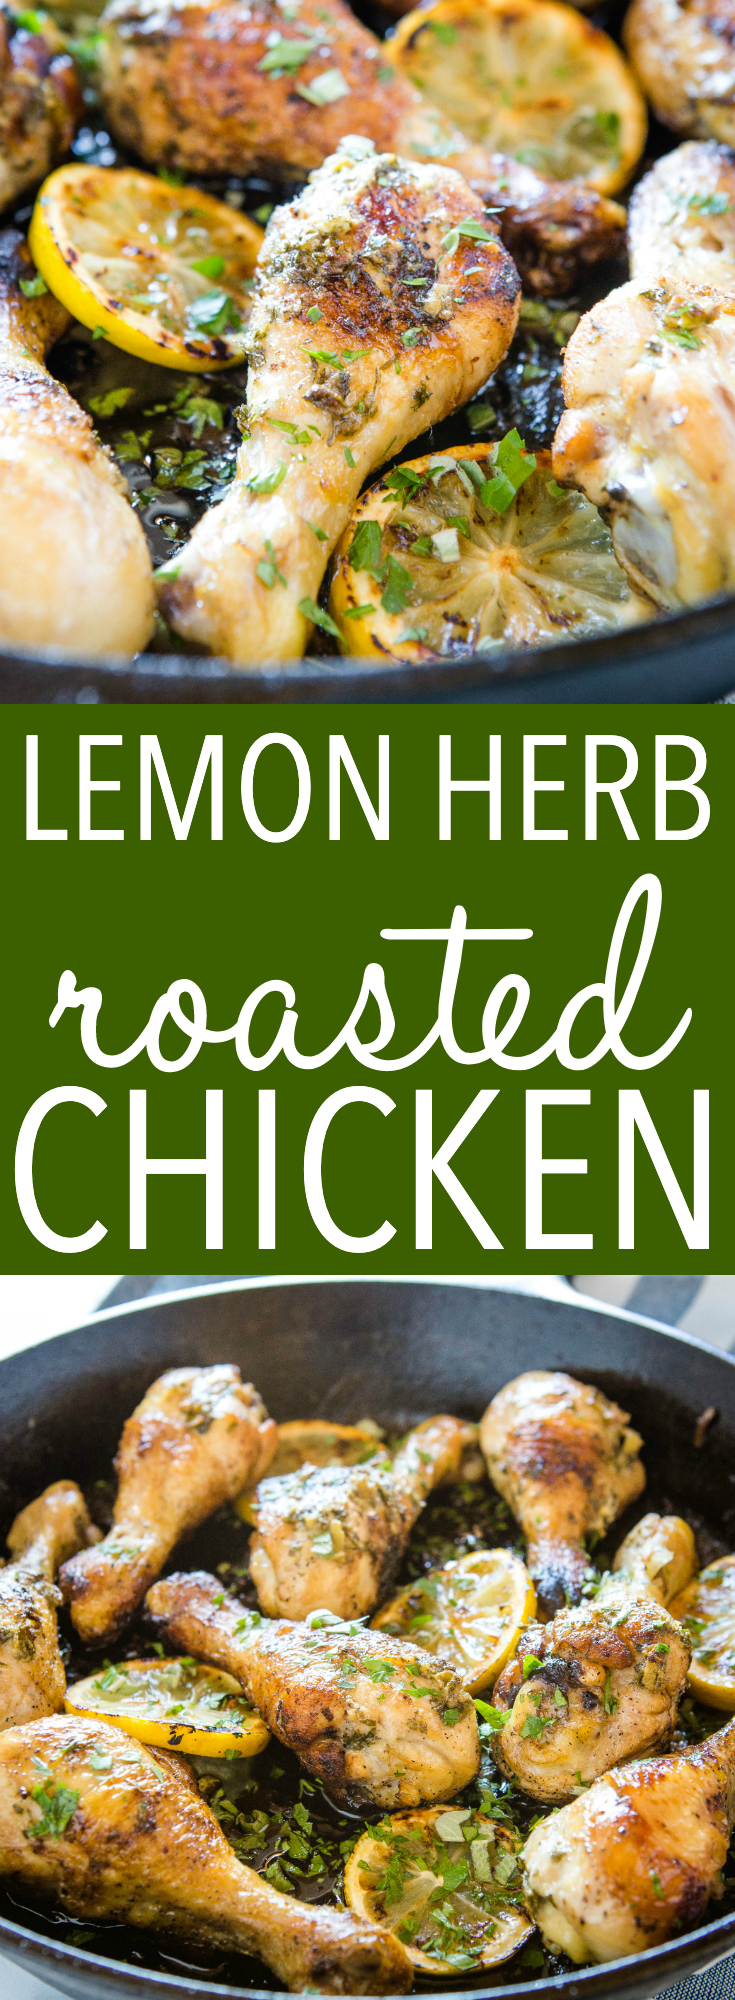 This Easy Lemon Herb Roasted Chicken is a delicious main dish made with a citrus-infused herb butter sauce - on the table in 25 minutes! Recipe from thebusybaker.ca! #chicken #lemon #herb #roasted #castiron #family #meal #mealprep #dinner  via @busybakerblog